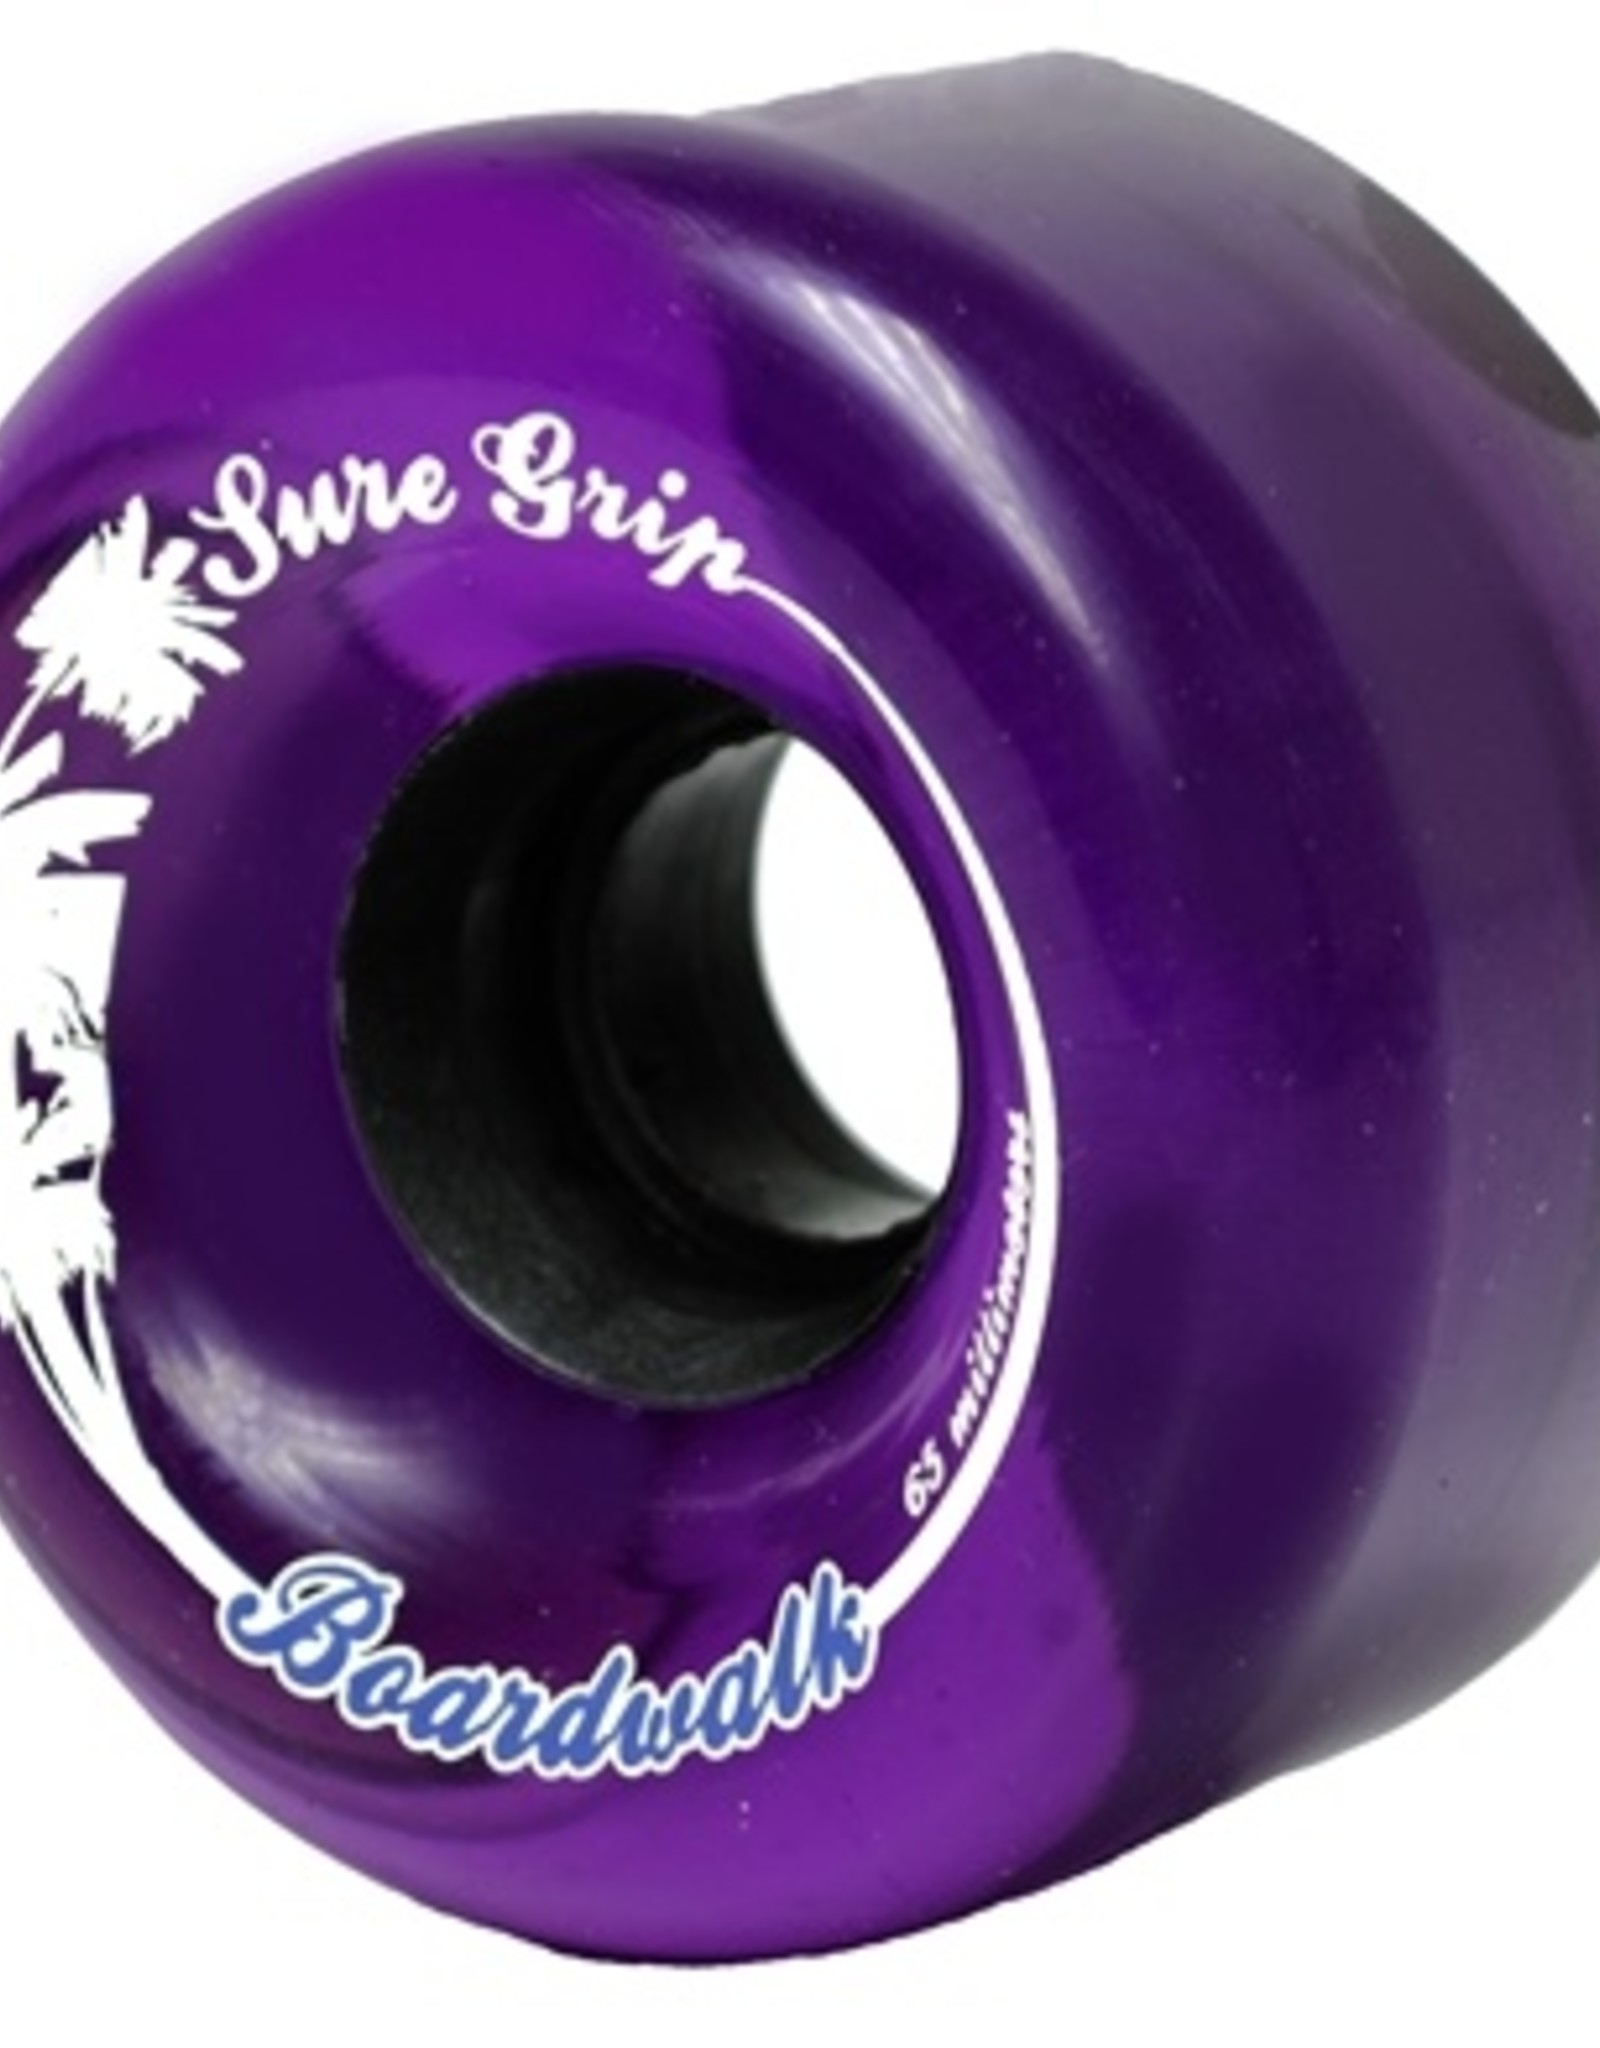 Sure Grip Sure Grip Boardwalk Wheels, 8 Pack